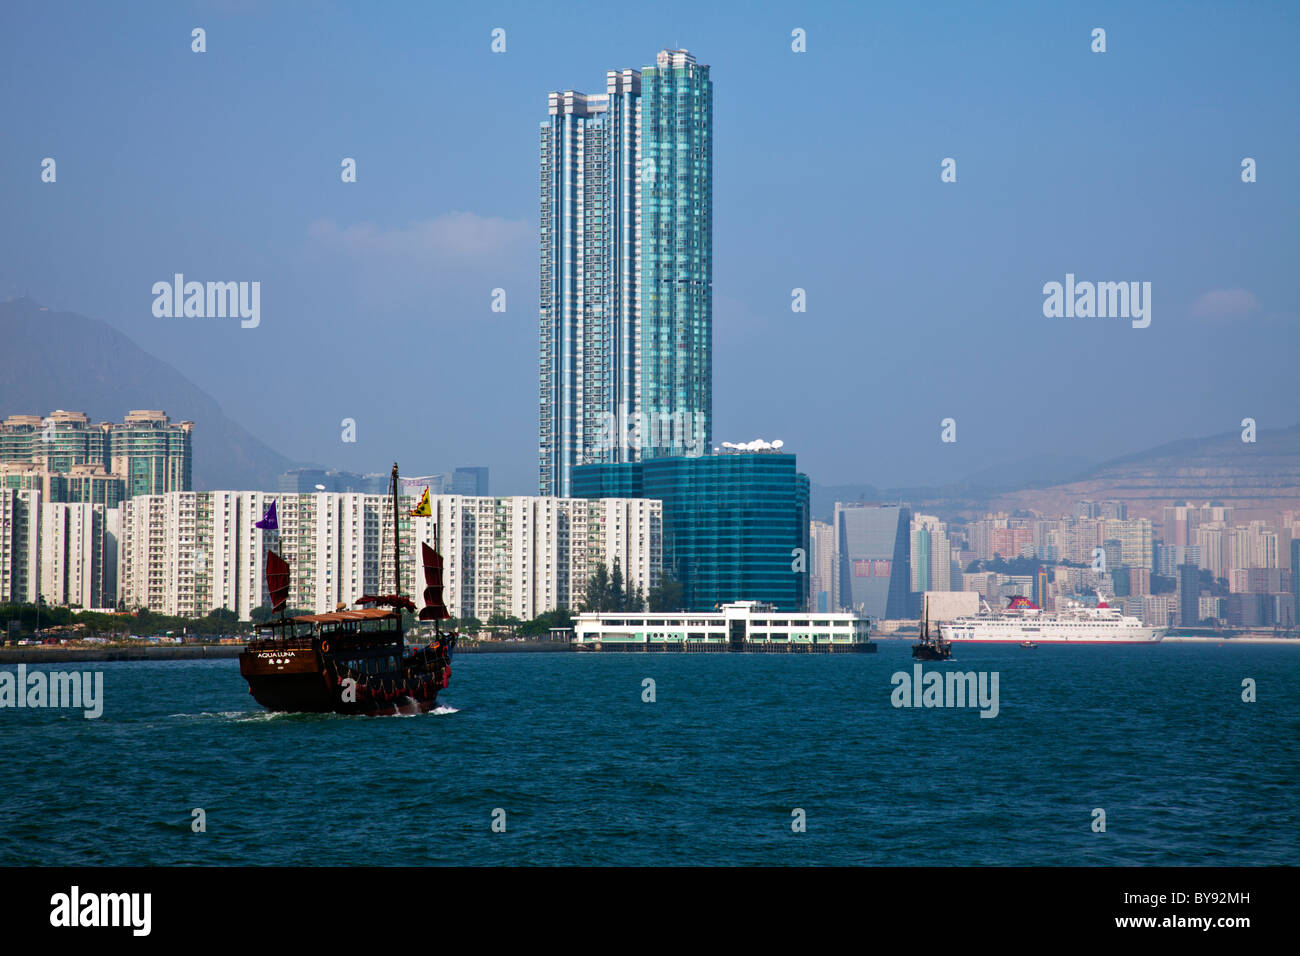 The Kowloon skyline in the day showing the iconic Chinese Junk sail boat on Victoria Harbour, Hong Kong - Stock Image